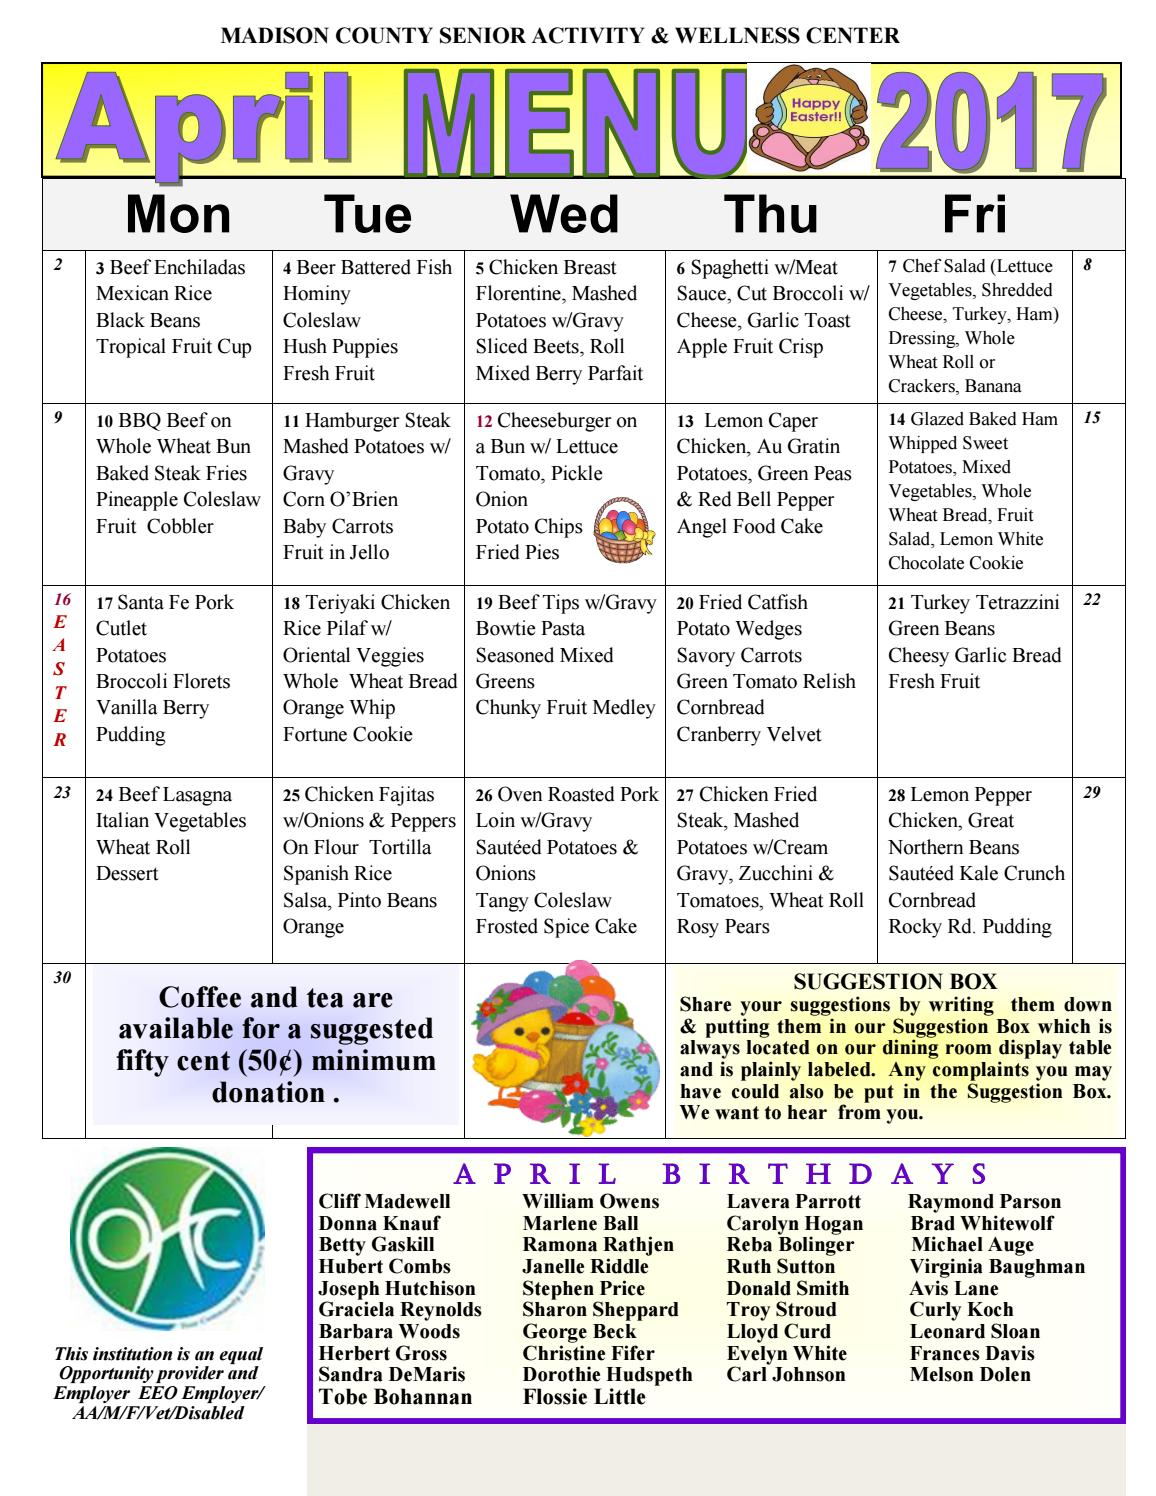 madison-county-senior-activity-wellness-center-newsletter